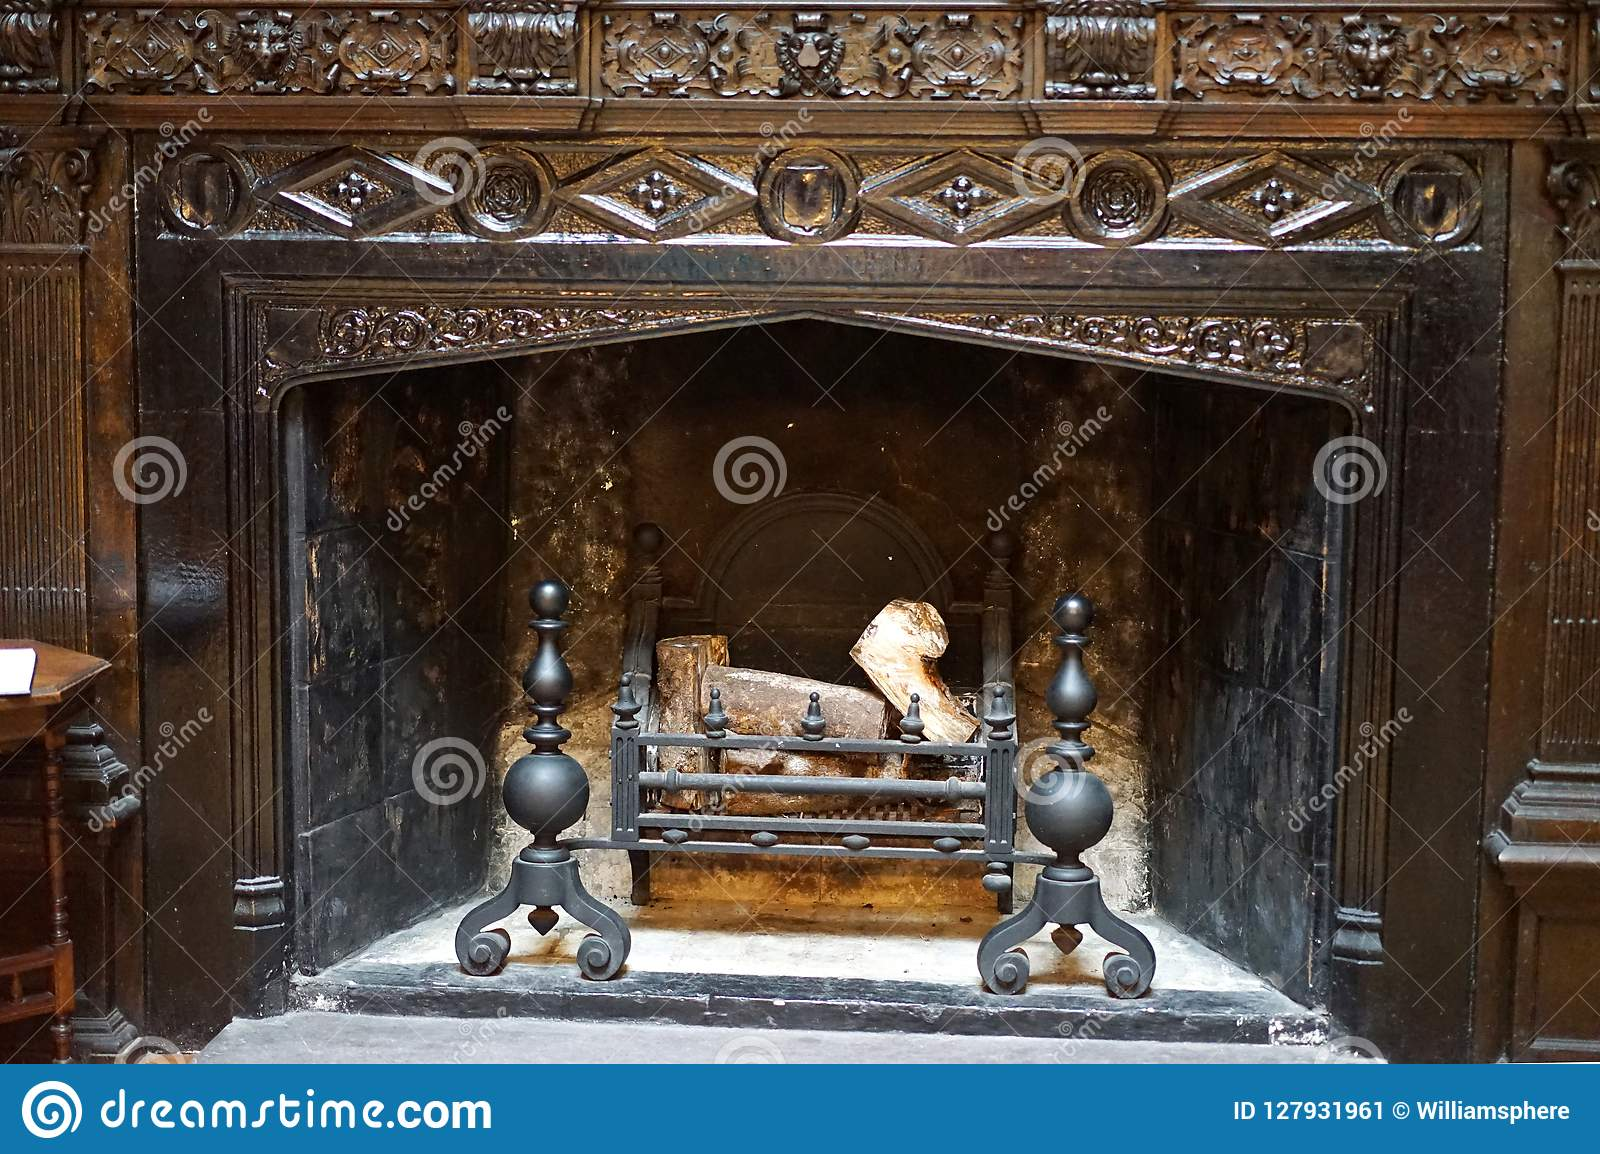 Intricate fireplace carvings in 18th century castle